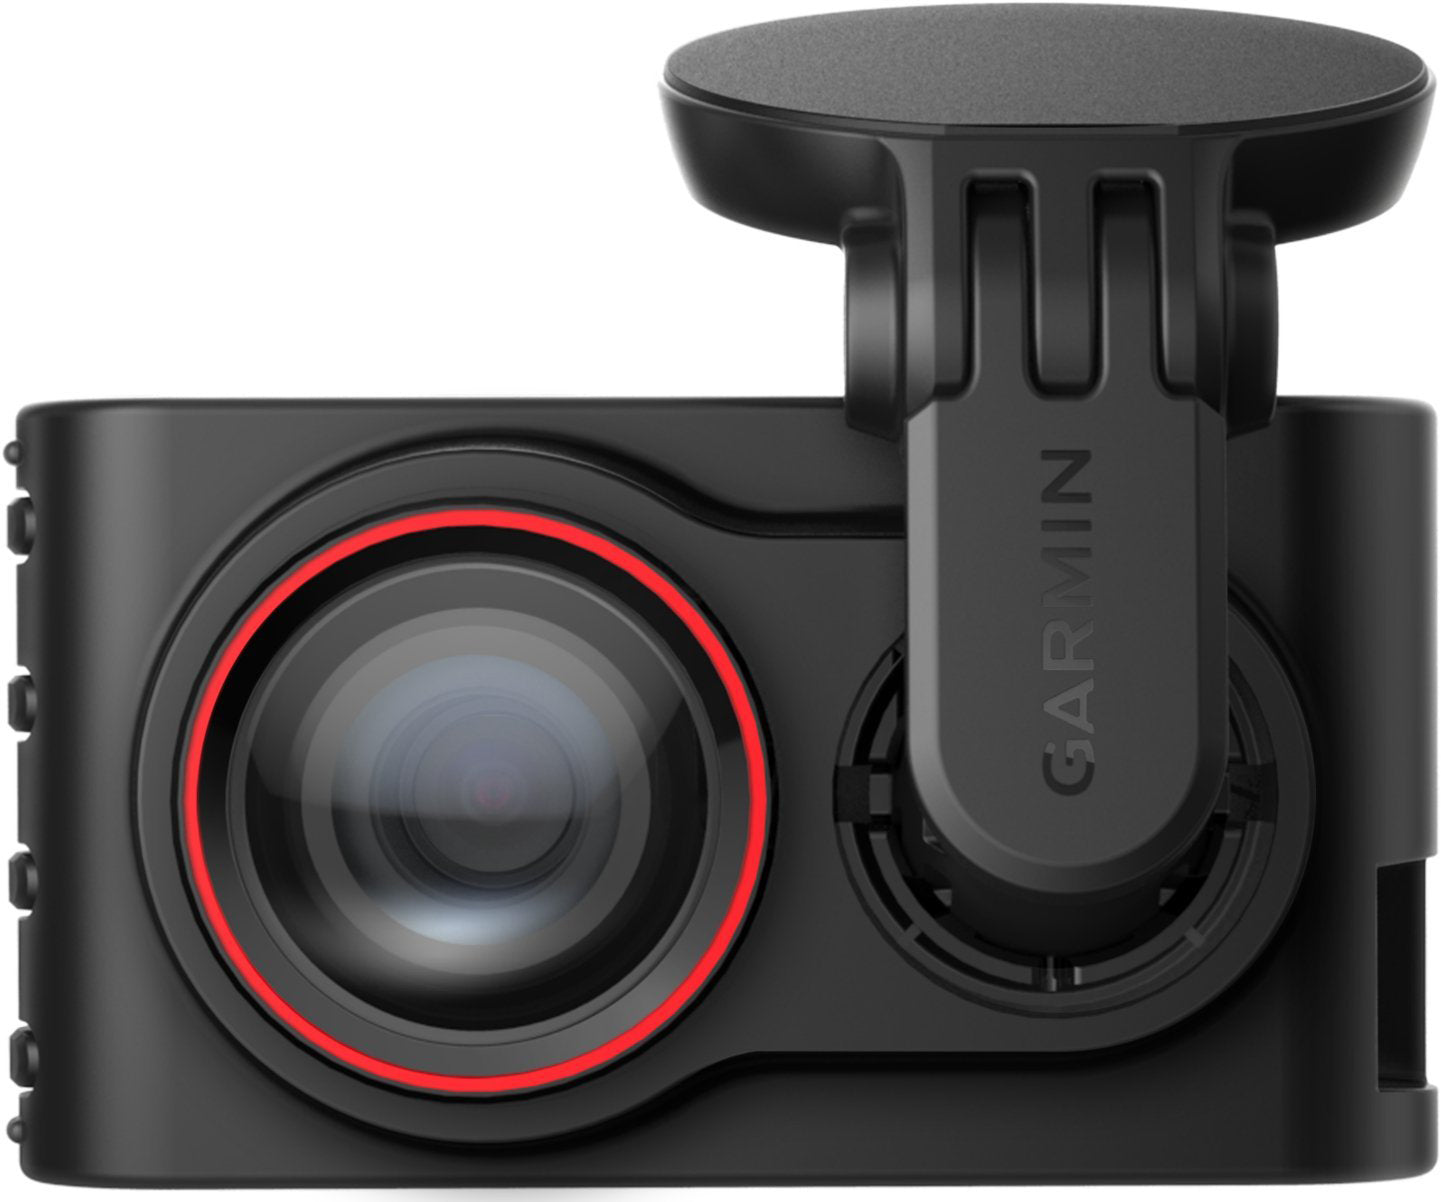 GARMIN DASH CAM 35 NOH - The Grease Monkeys